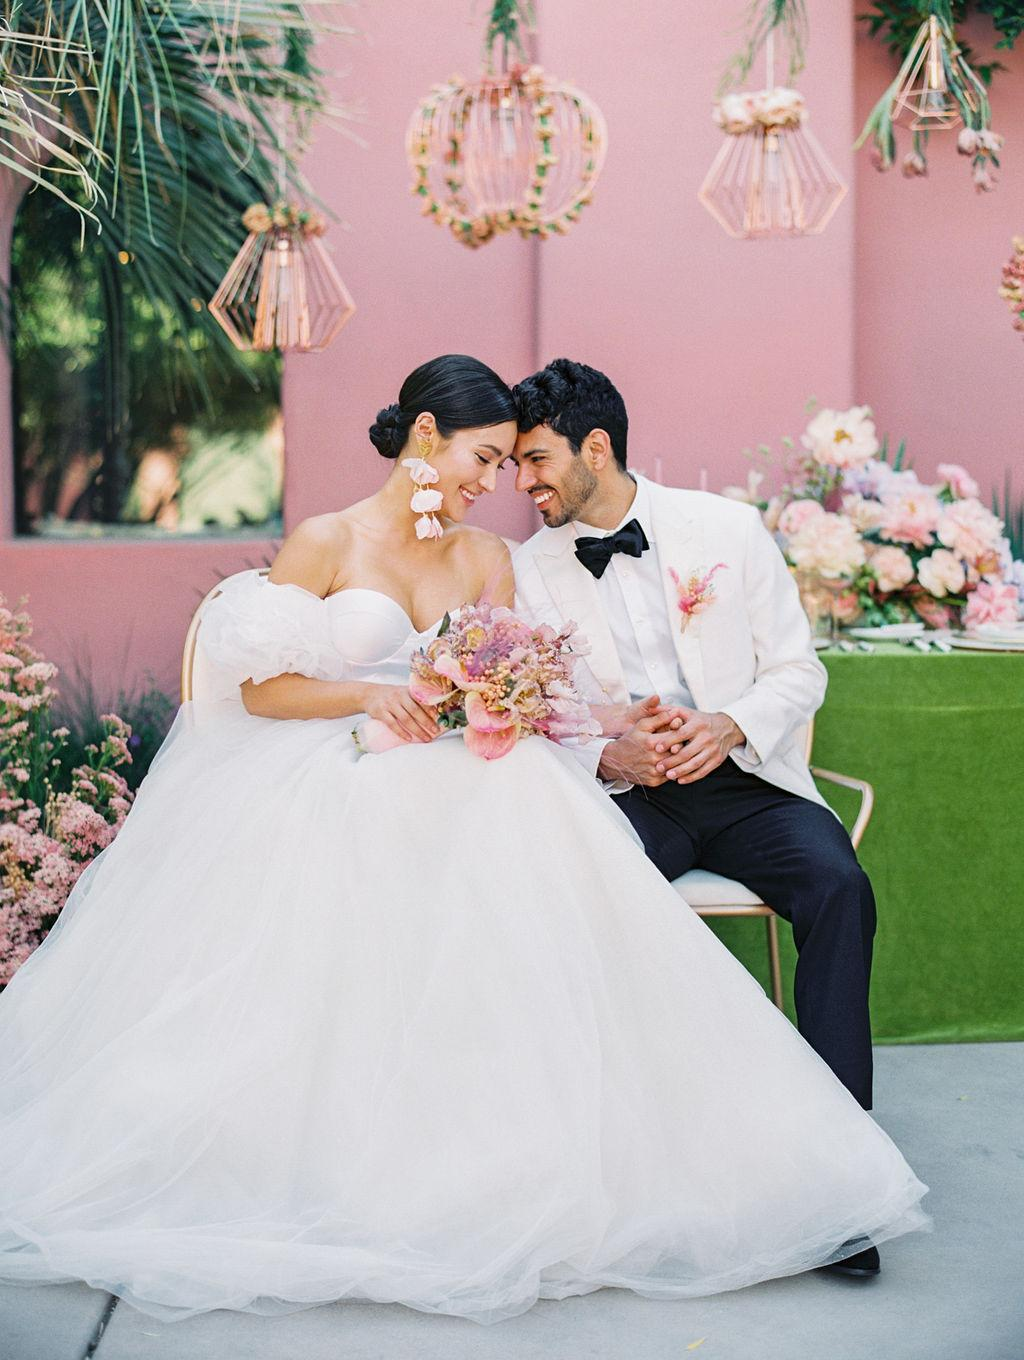 pink and green tropical wedding with hanging floral copper lanterns https://shopstyle.it/l/bhiqp